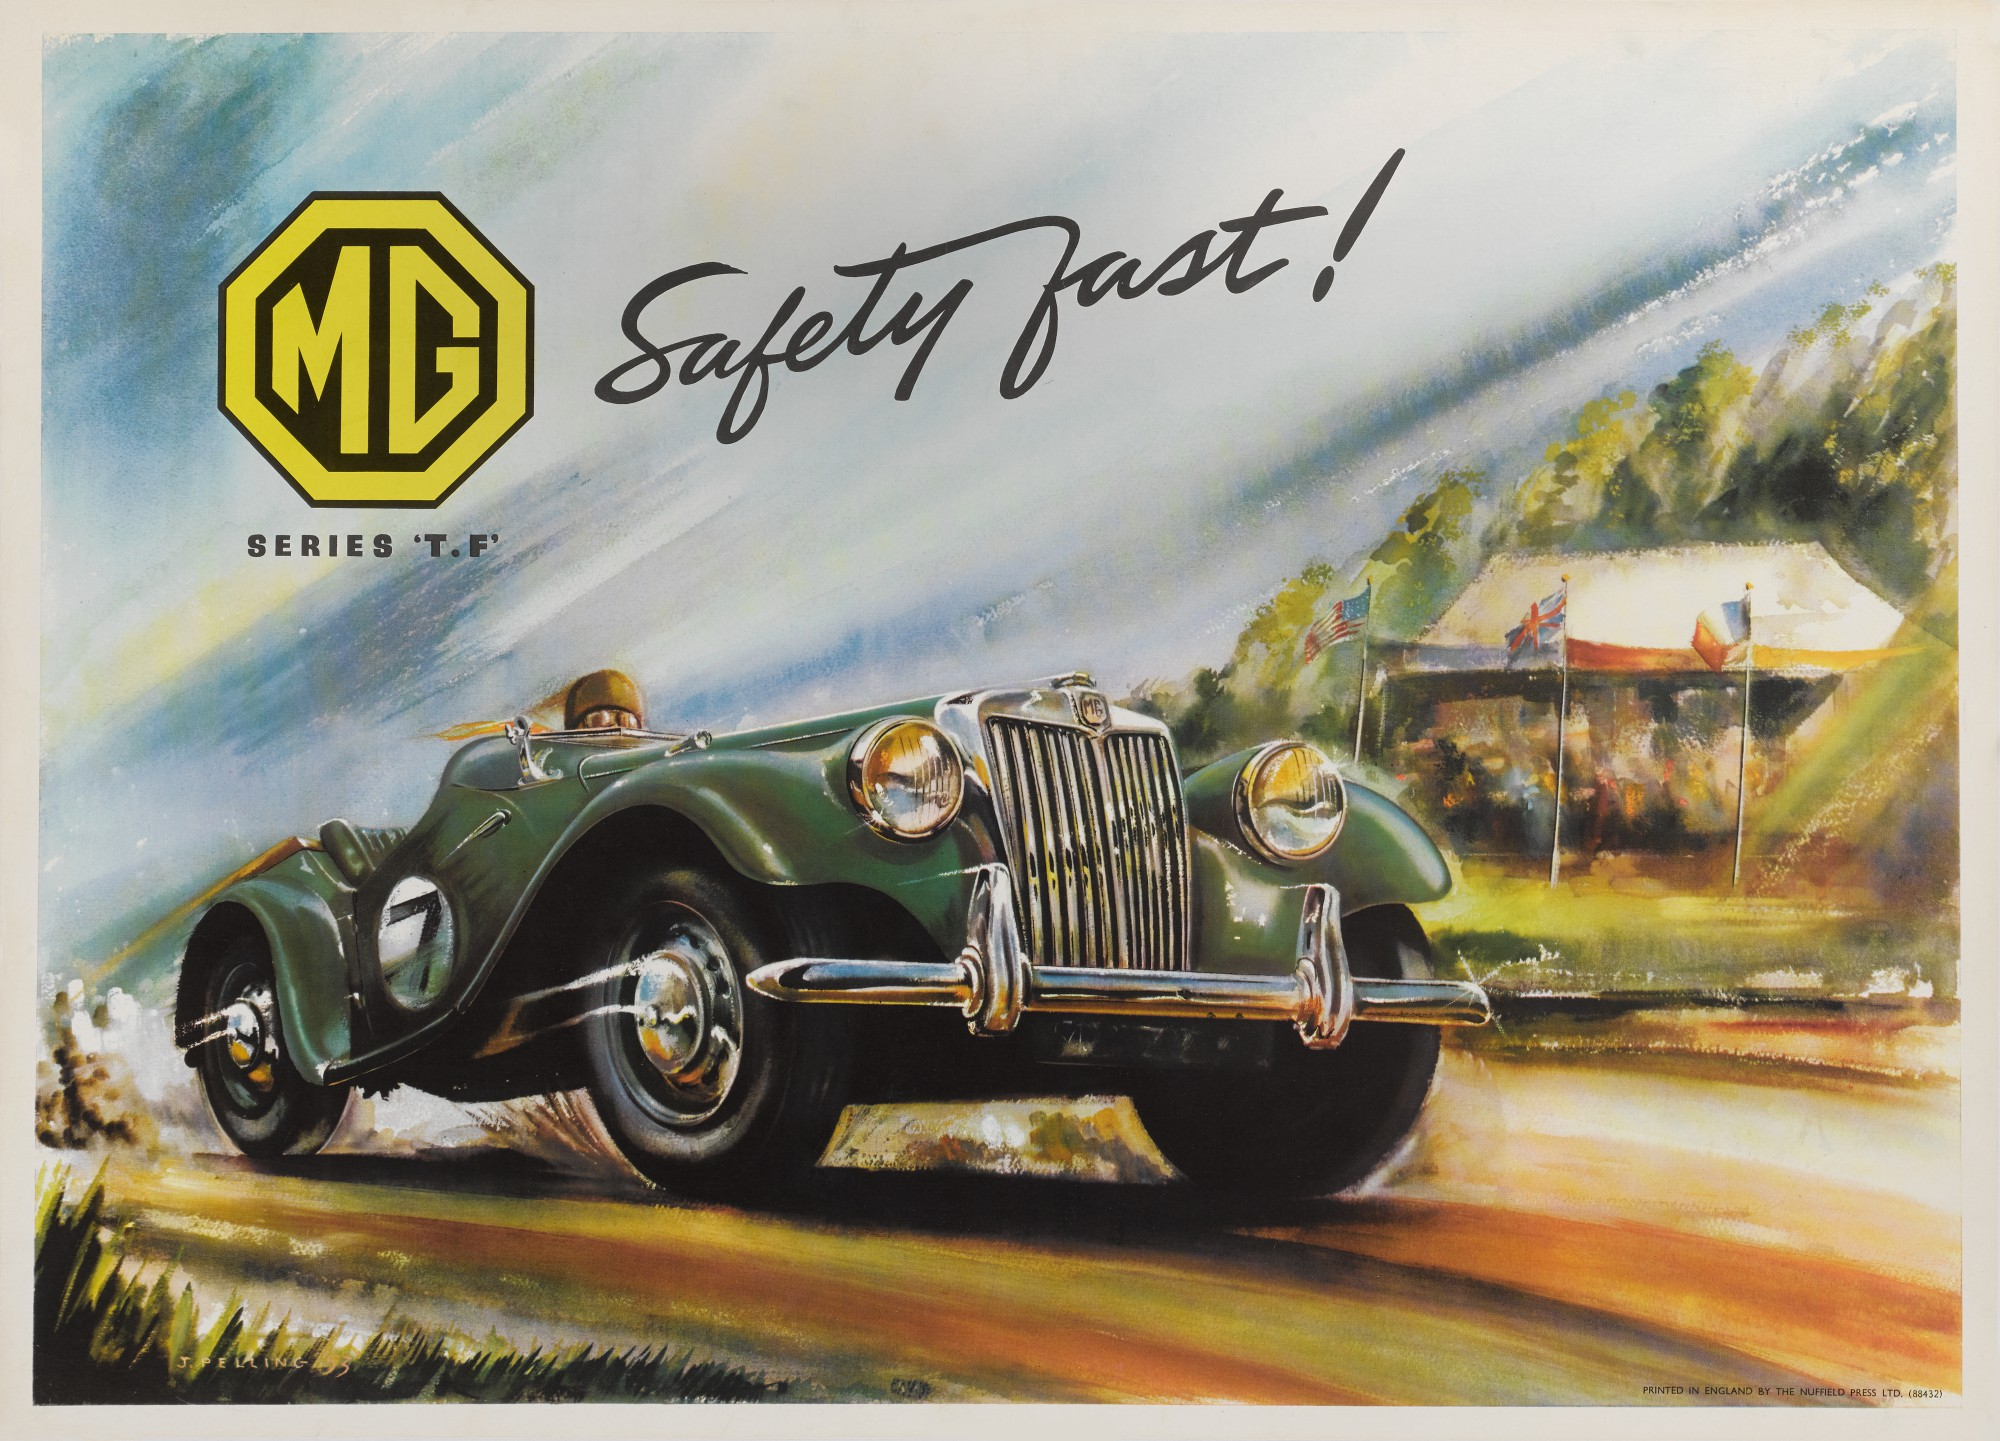 MG SERIES 'T.F' SAFETY FAST ! (1953) ADVERTISING POSTER, US